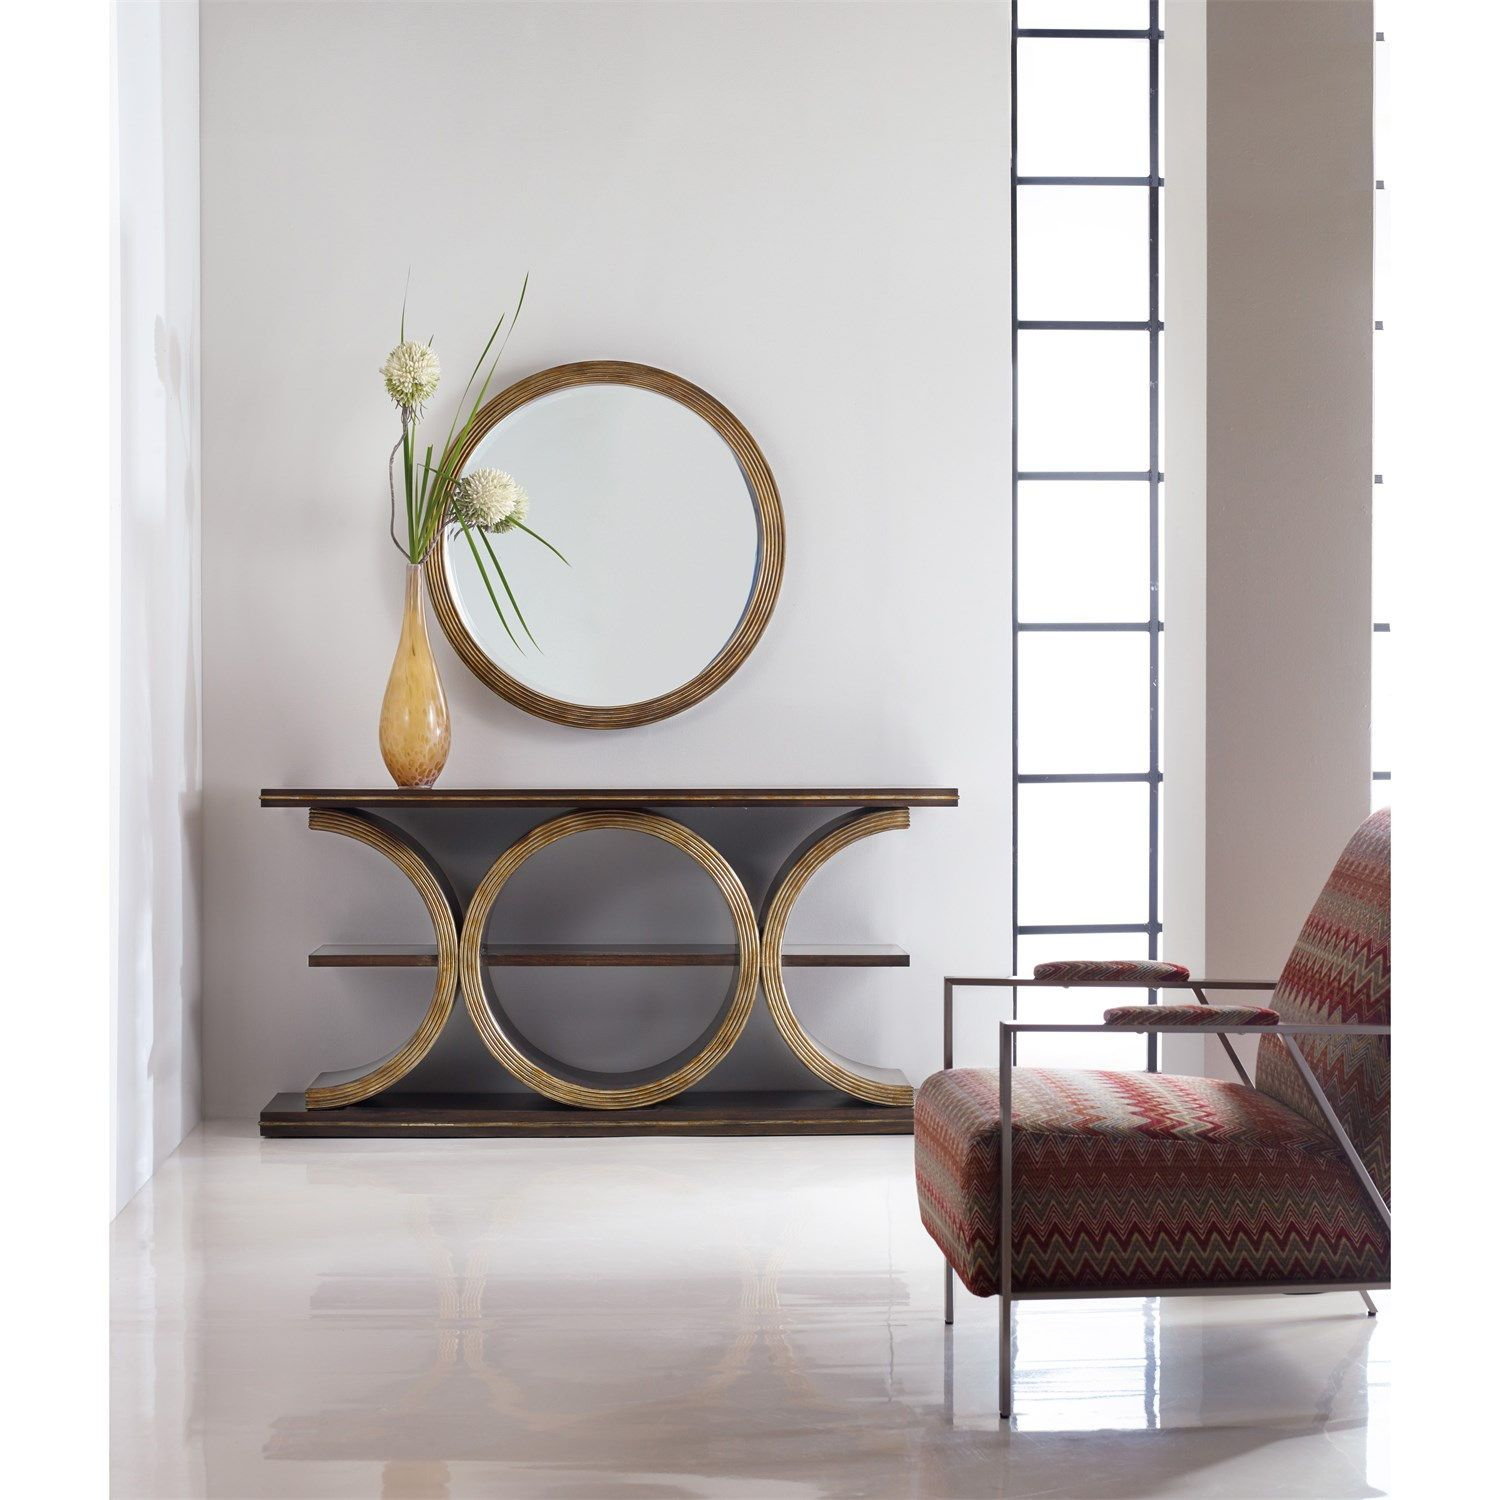 Merveilleux Hooker Furniture 638 50263 Melange Presidio Console Table And Mirror